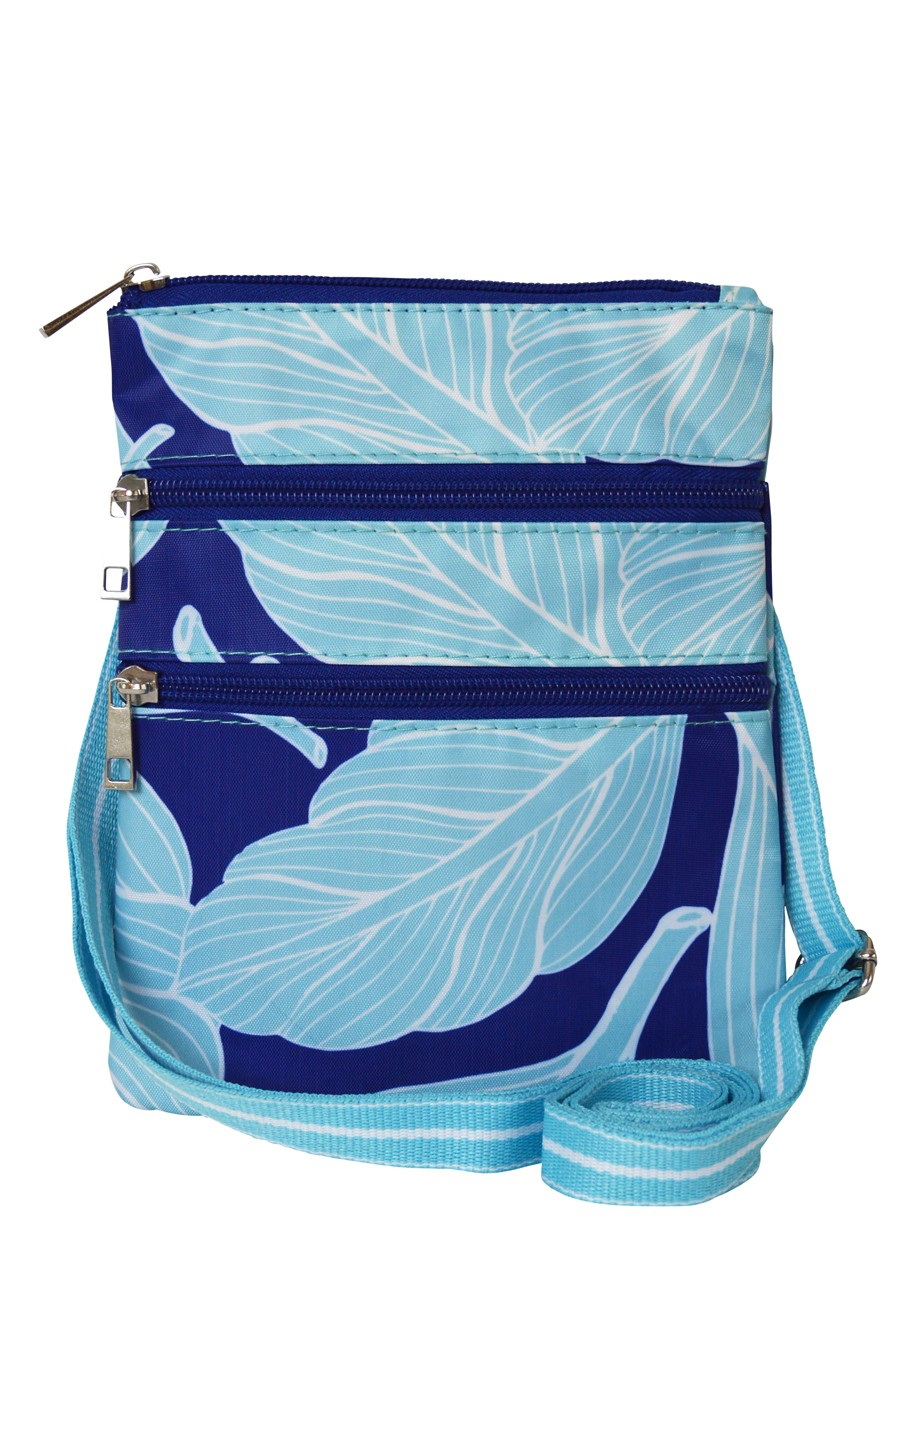 Palm Paradise Crossbody Bag - FINAL SALE